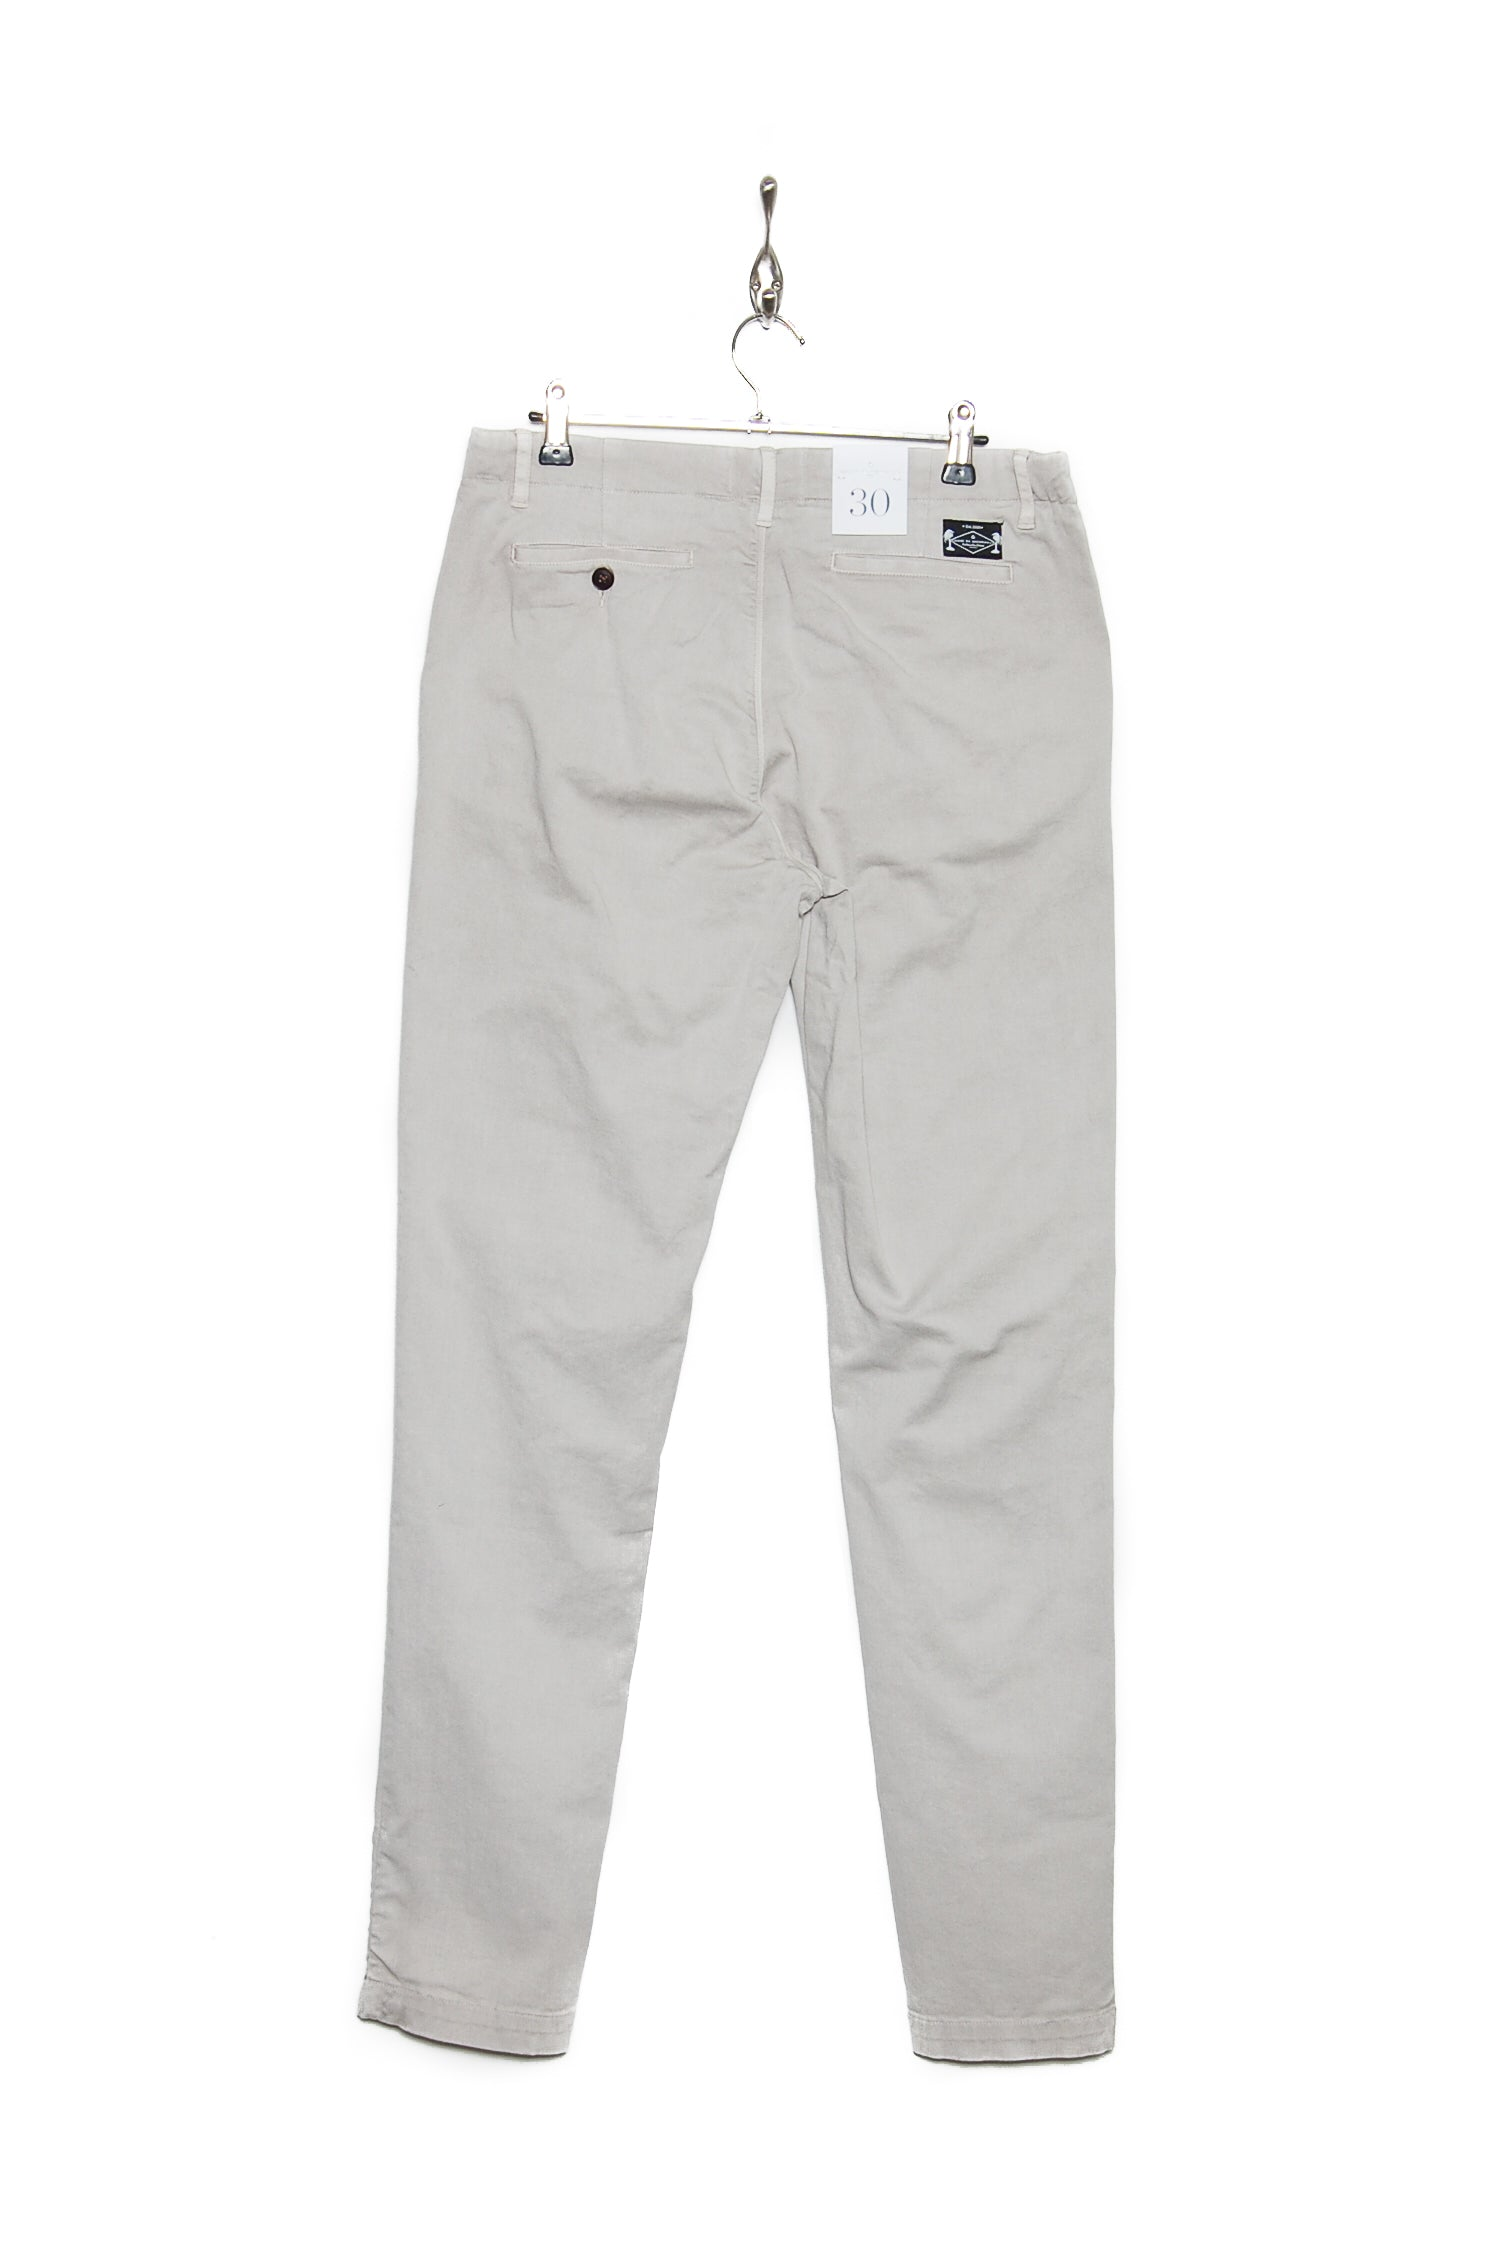 Cuisse de Grenouille Chino Medium Washed coco